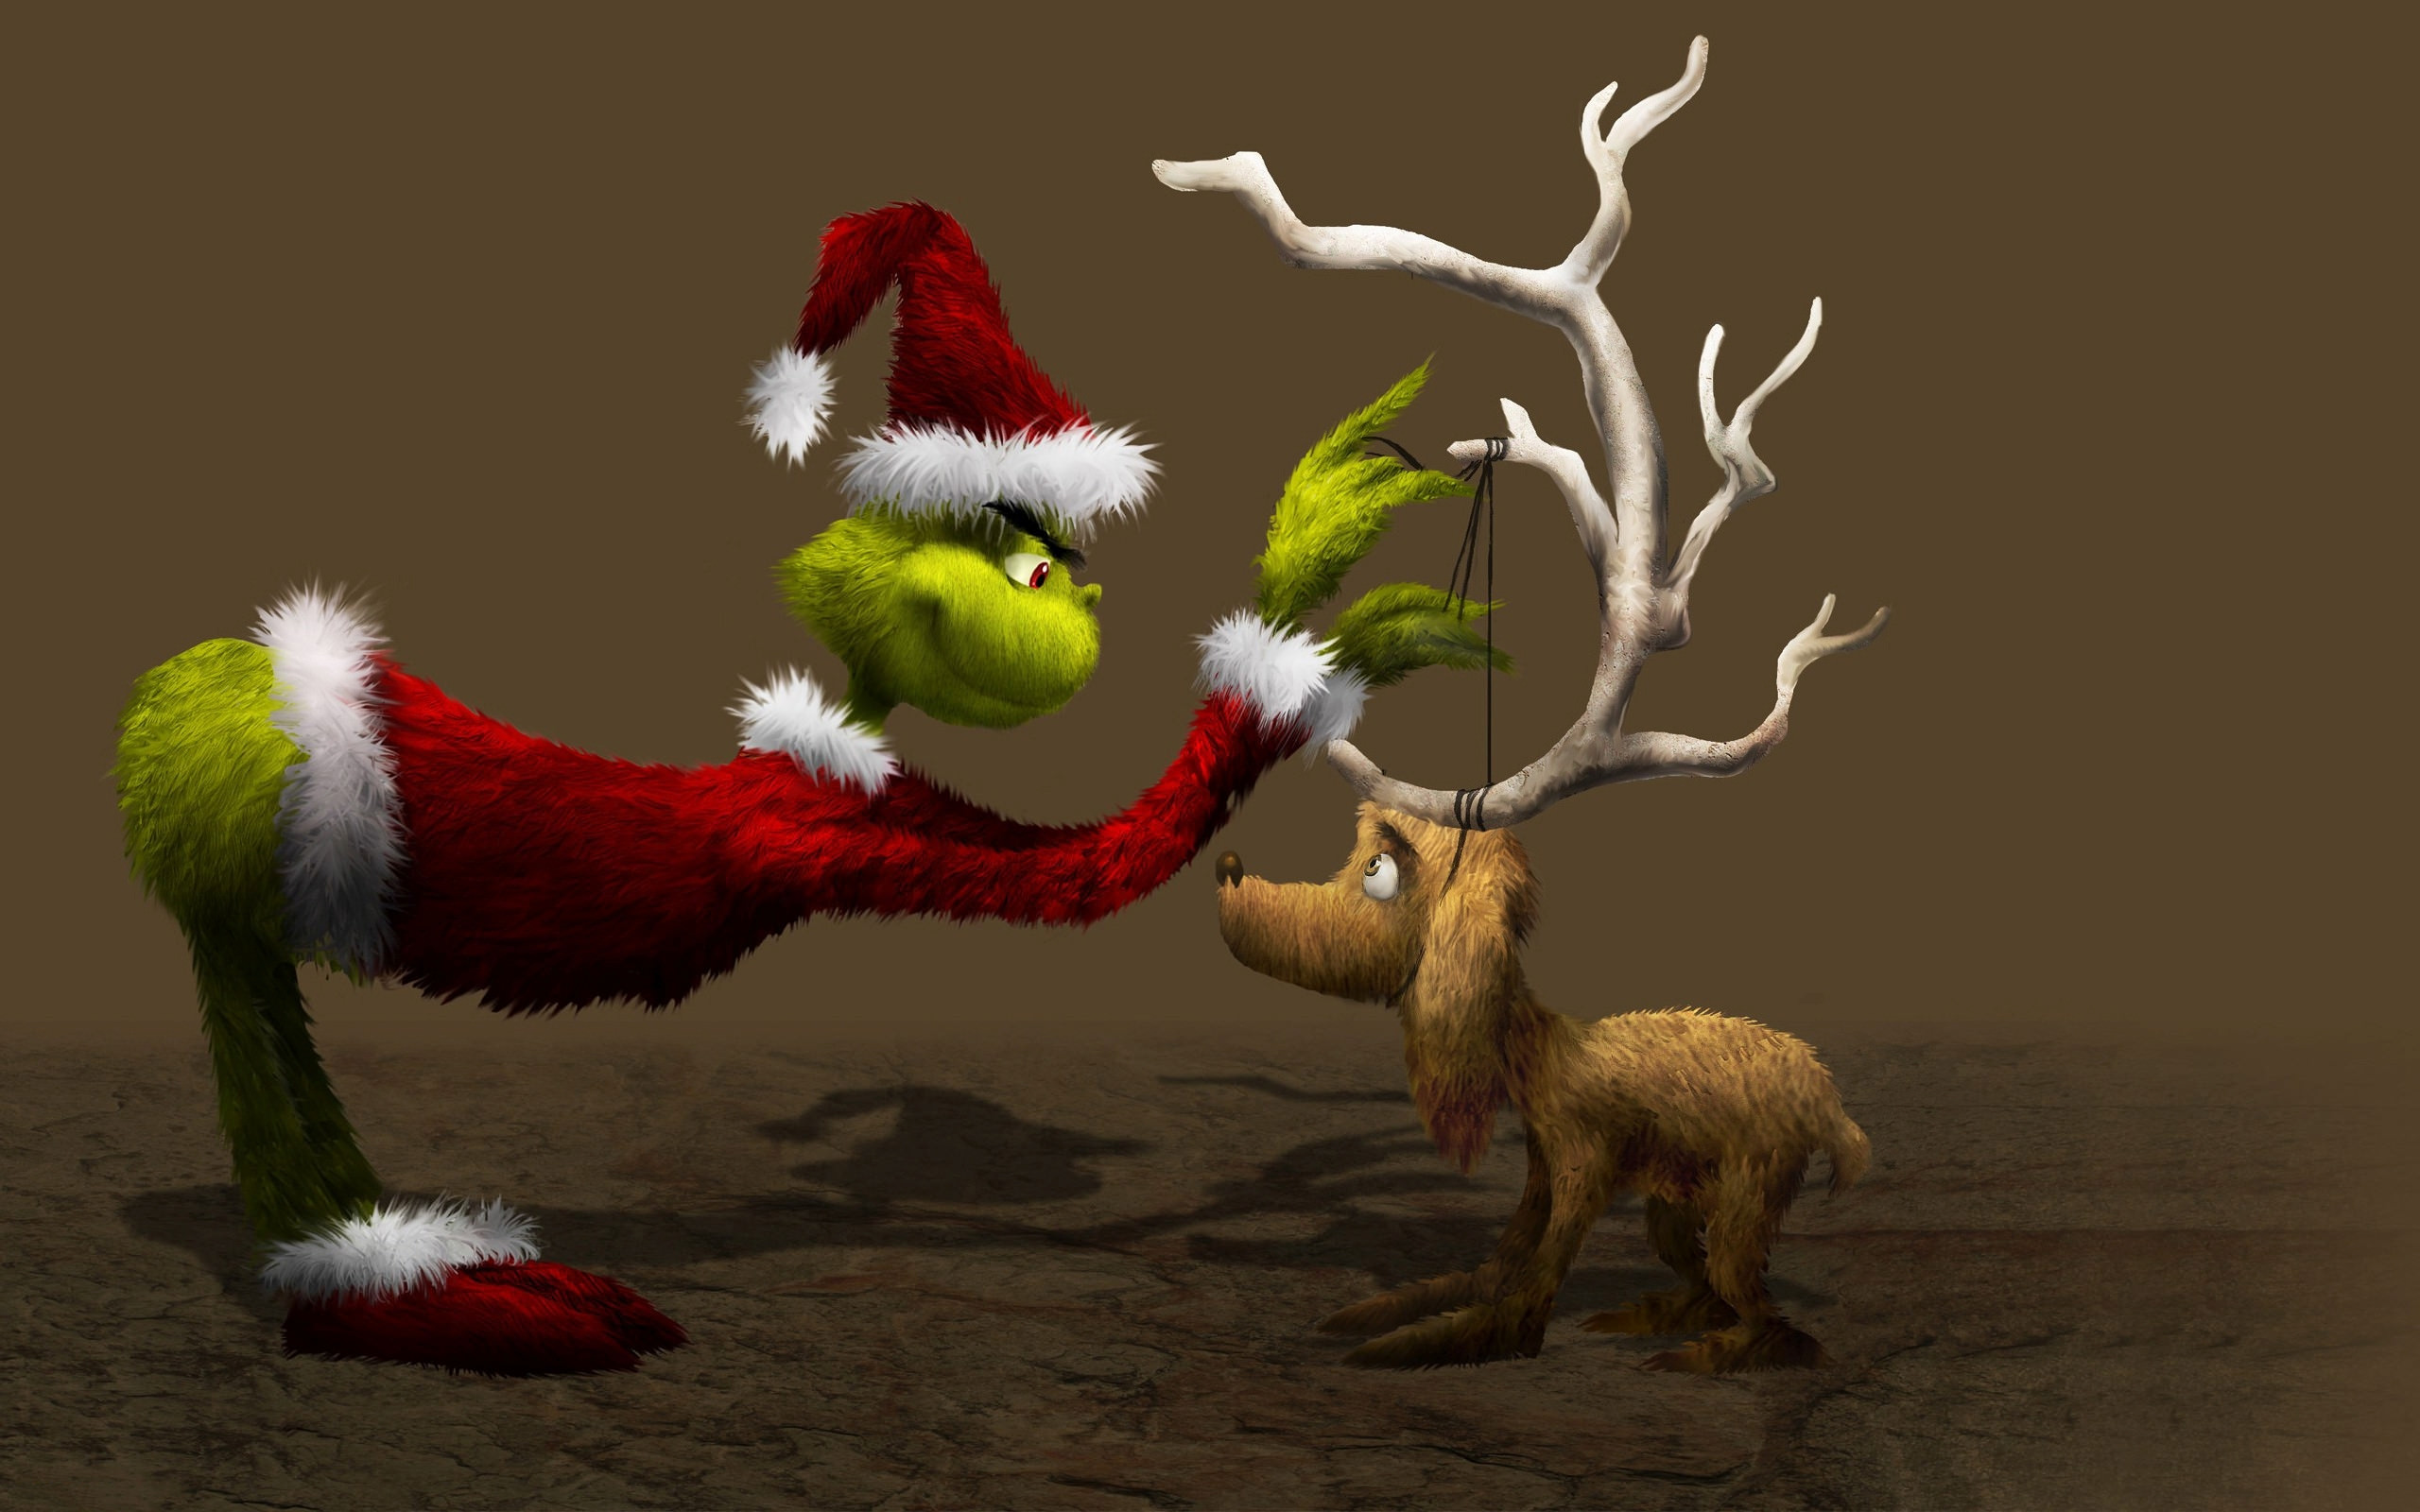 Grinch and Max Computer Wallpapers   Top Grinch and Max 2560x1600